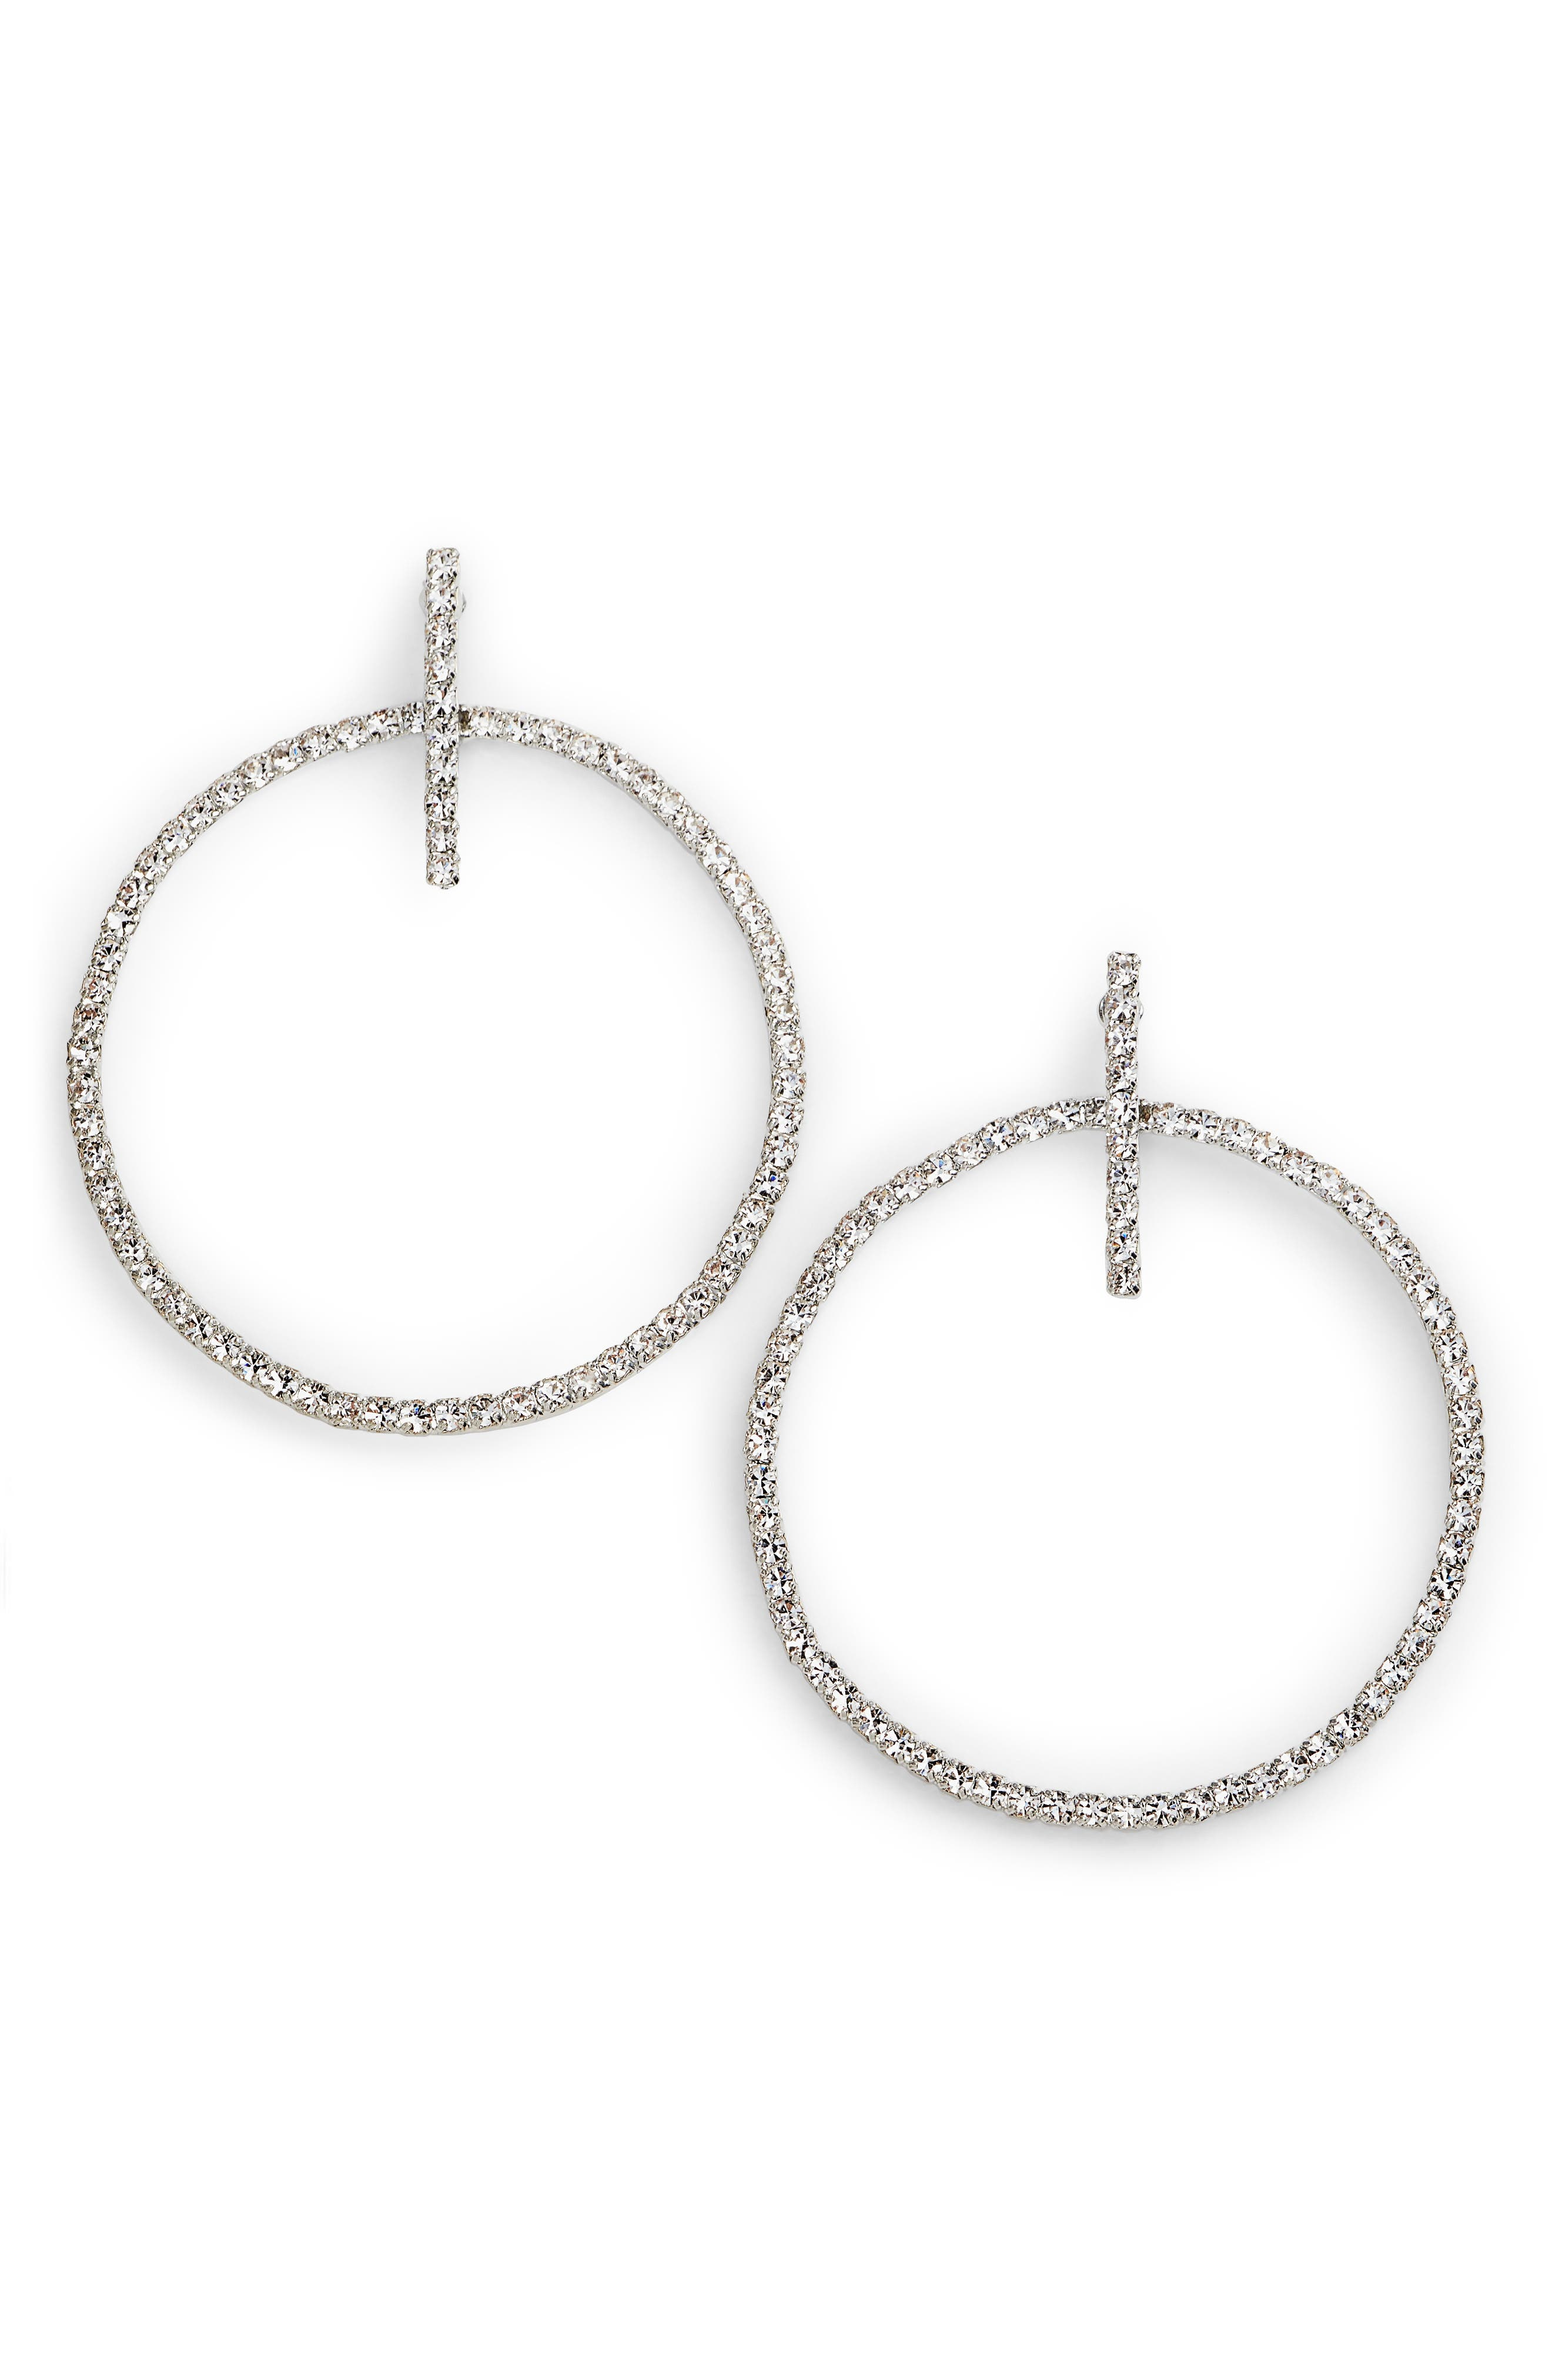 Crystal Hoop Drop Earrings,                         Main,                         color, Crystal/ Silver